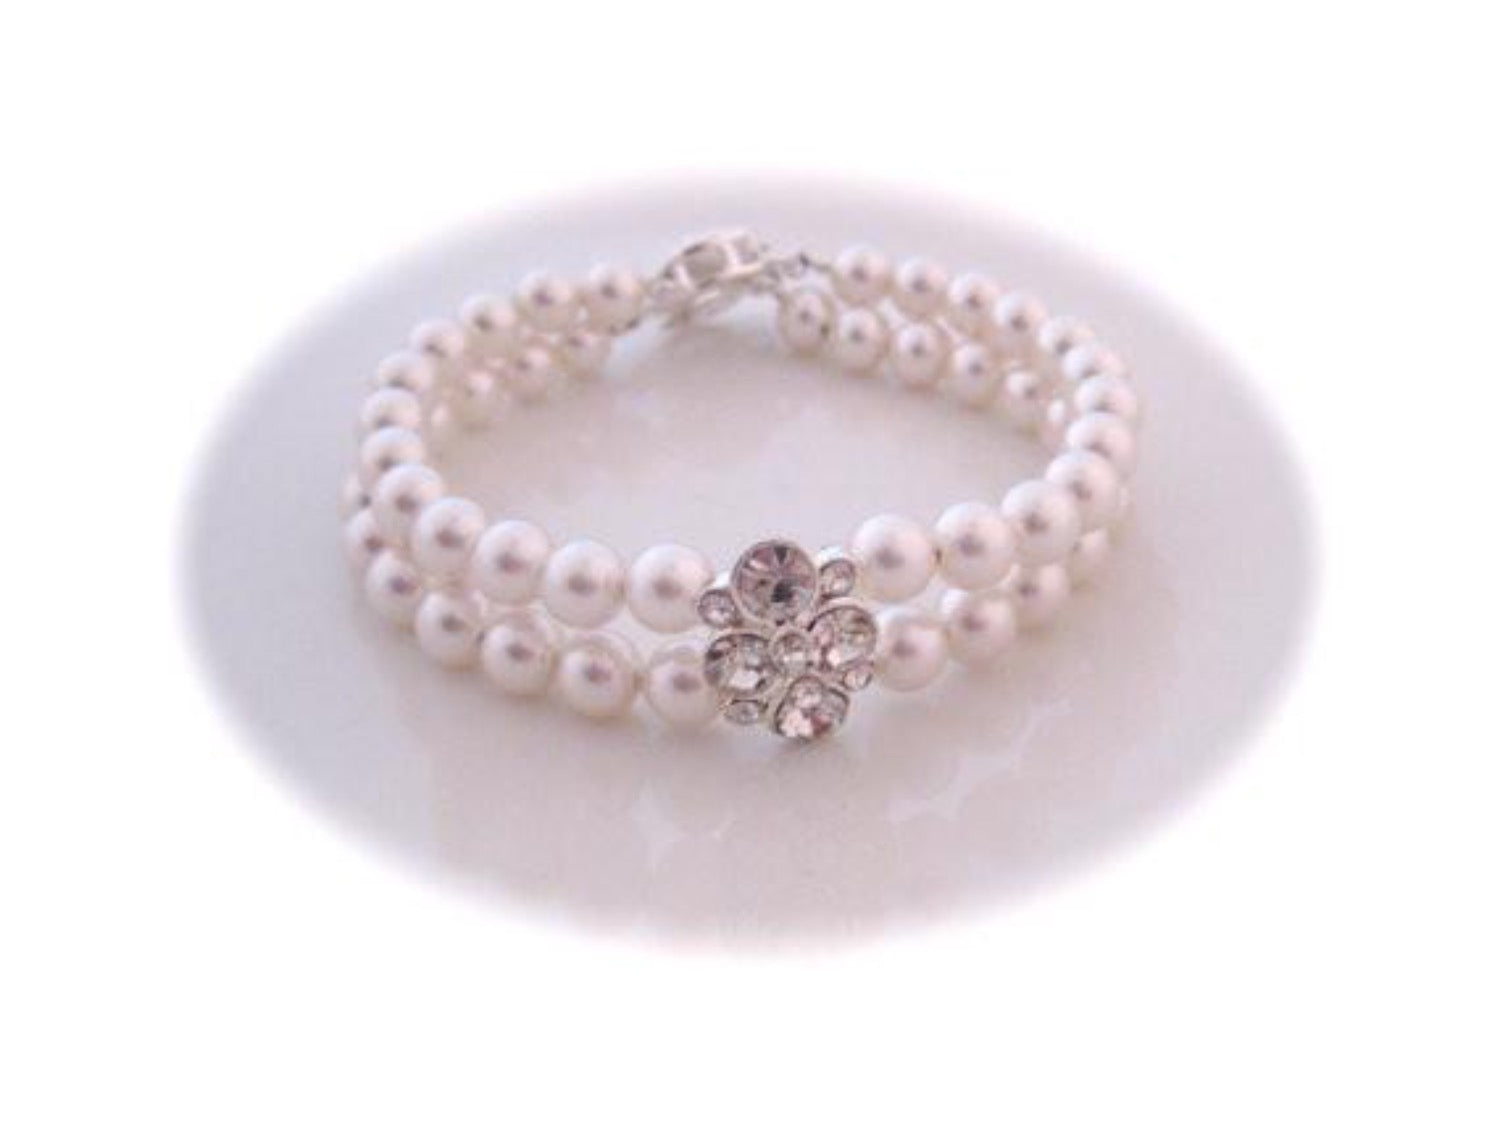 Wedding Jewelry, Pearl bracelet, Cubic zirconia Slider, Silver Filigree Clasp - Clairesbridal - 2